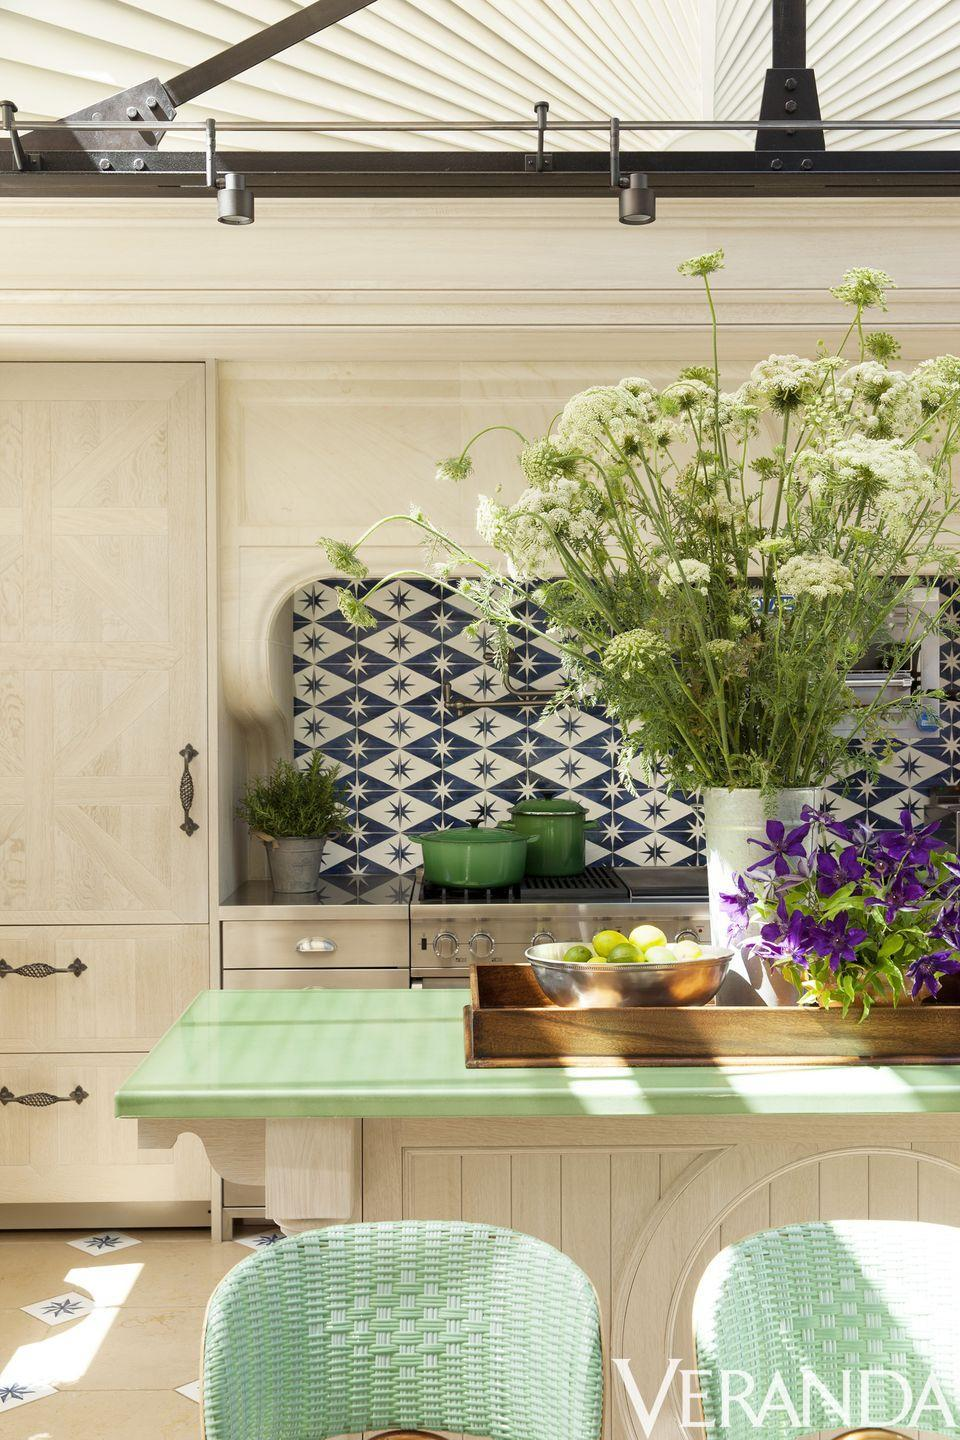 """<p>This Los Angeles kitchen features a tile backsplash with a diamond and star pattern (<a href=""""http://www.solarantiquetiles.com/"""" rel=""""nofollow noopener"""" target=""""_blank"""" data-ylk=""""slk:Solar Antique Tiles"""" class=""""link rapid-noclick-resp"""">Solar Antique Tiles</a>) in an inky blue and crips white palette that complements the wood grain cabinetry and mind green island top and chairs.</p>"""